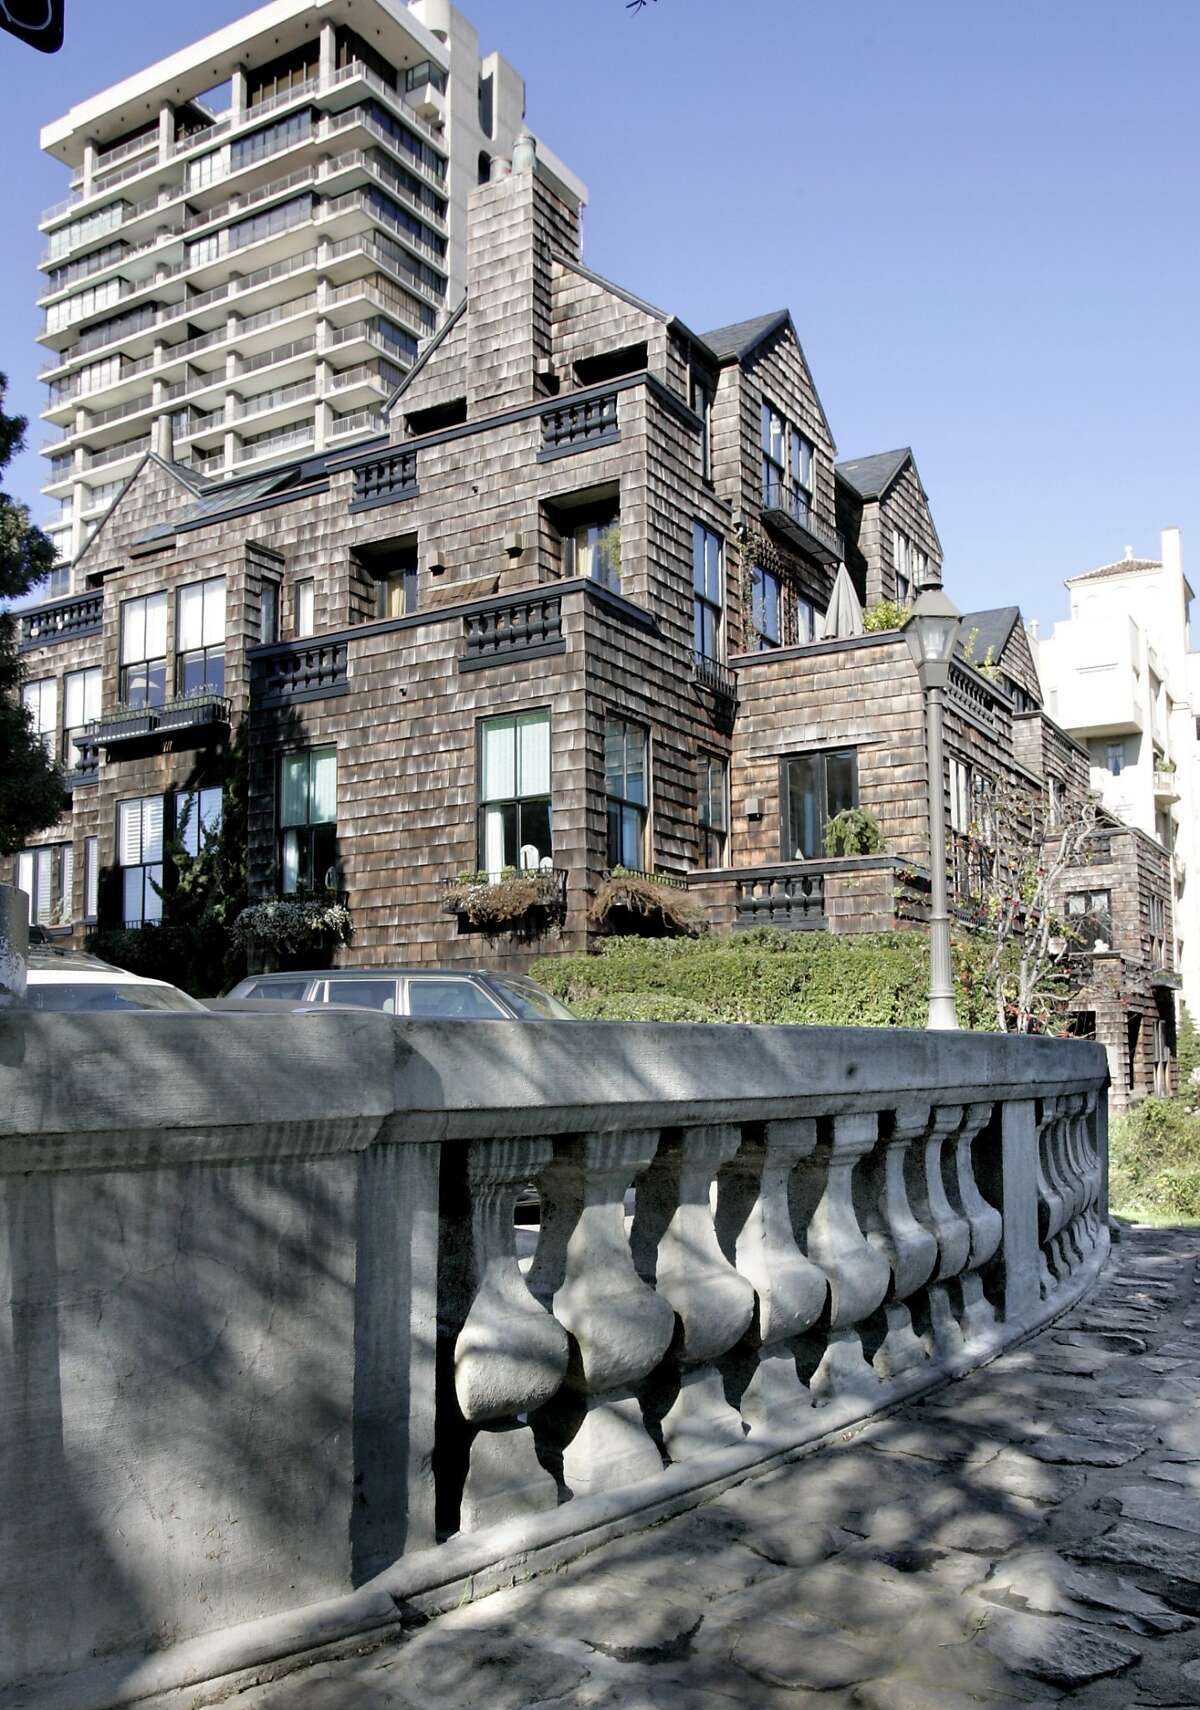 SIGSTYLE04_rad.jpg Home and Garden story about architect George Romsey. SHOWN: at 1020 Vallejo St. in San Francisco we find The Hermitage Condominiums. The Hermitage adopts the shingled, black-trimmed look that another architect, Willis Polk, used nearby. The Hermitage also copies the balusters that Willis Polk designed on a sidewalk nearby. Katy Raddatz / The Chronicle